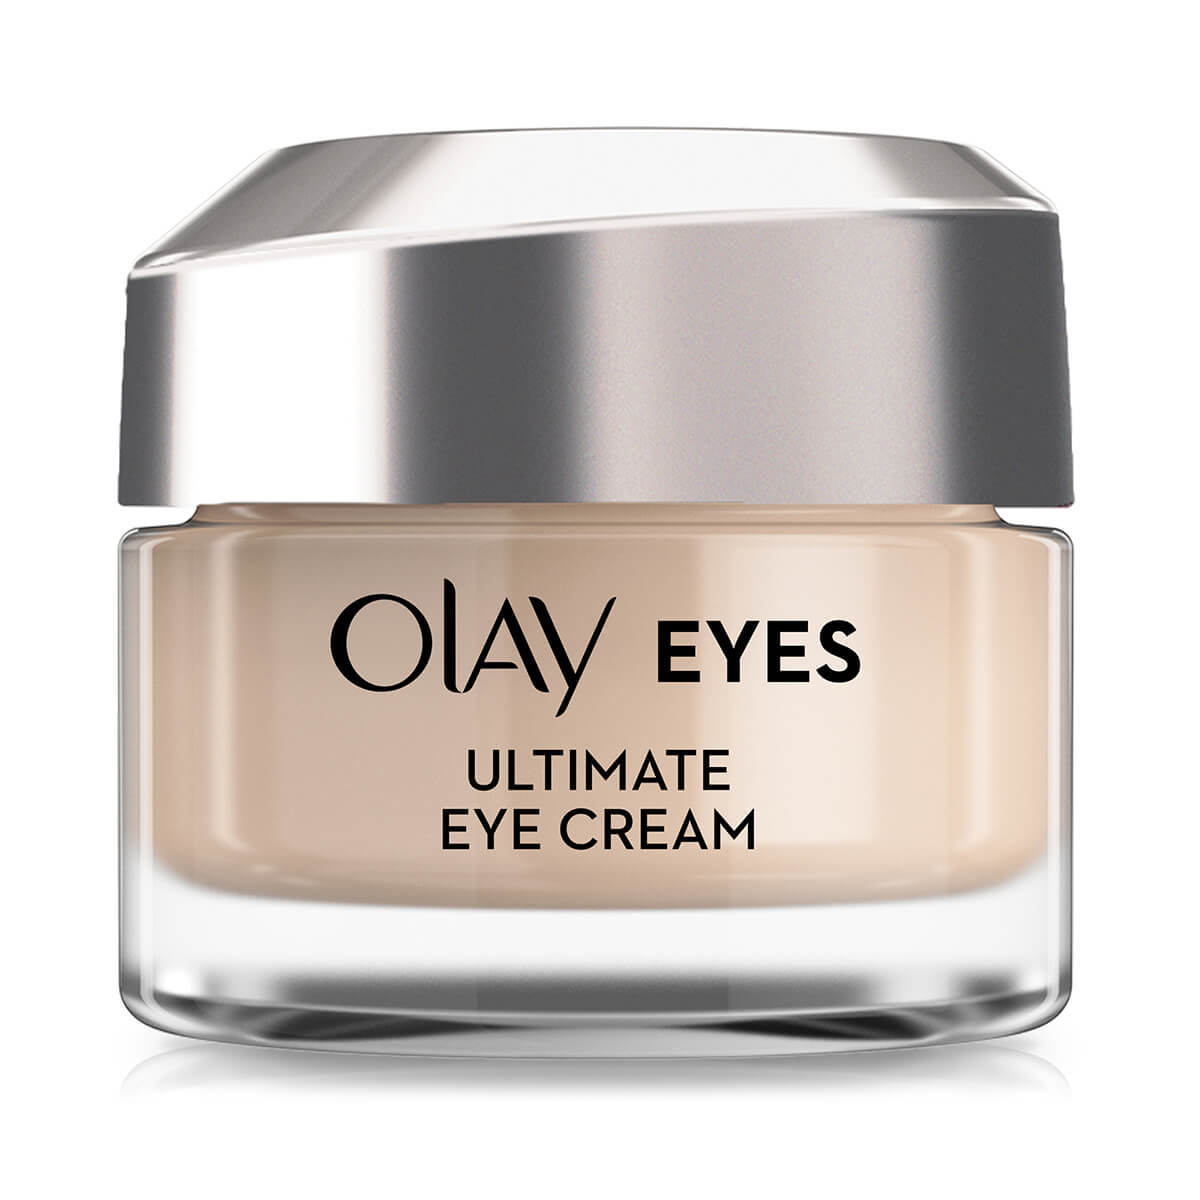 Olay Eyes Ultimate Eye Cream For Wrinkles Puffy Eyes And Dark Circles